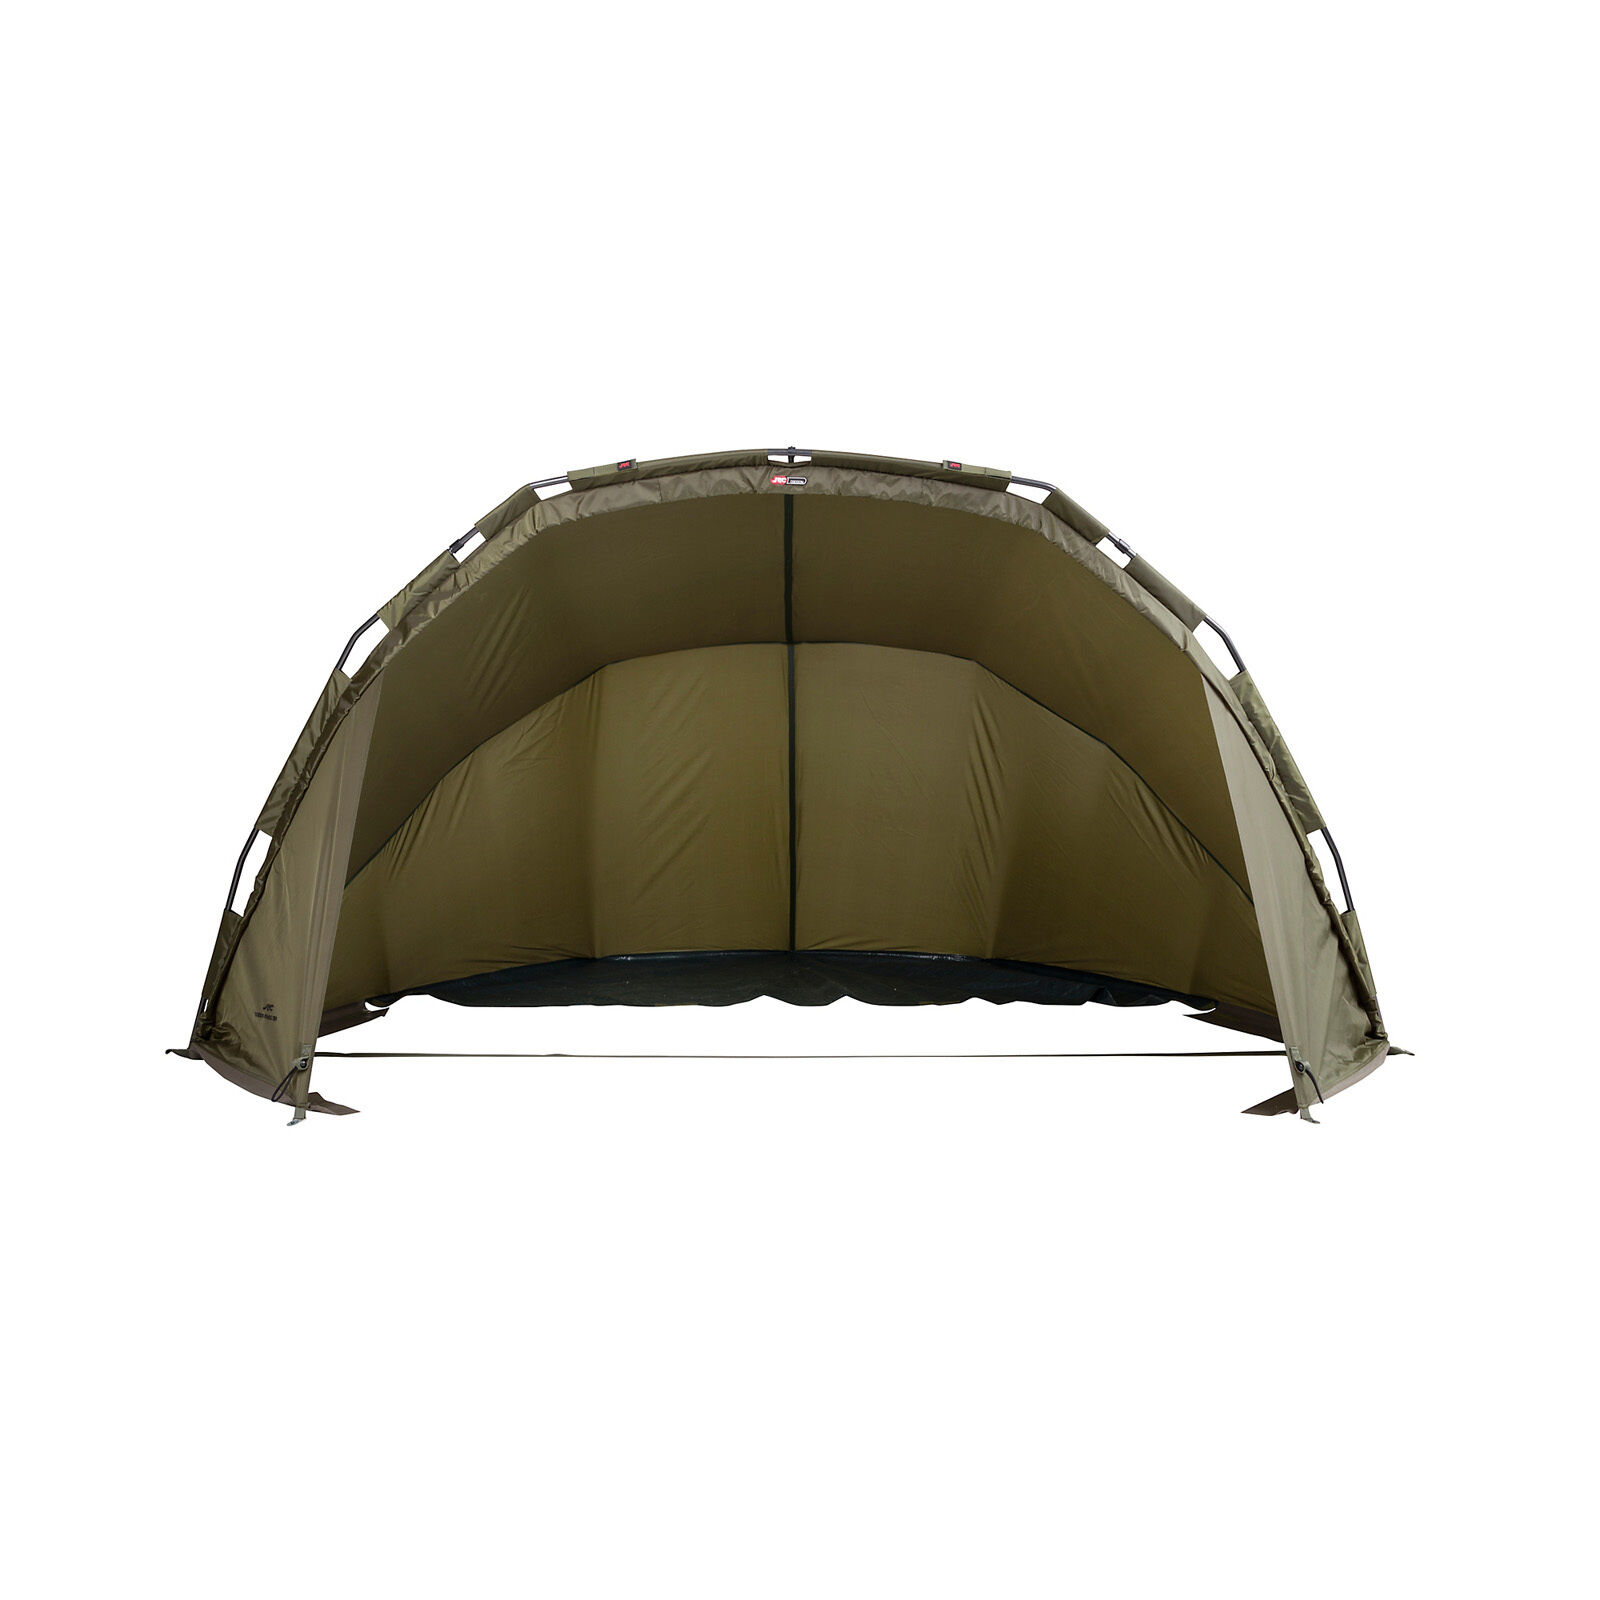 JRC Carp Fishing Cocoon 2G Shelter   Session Kit - Lightweight, Carrybag & Pegs